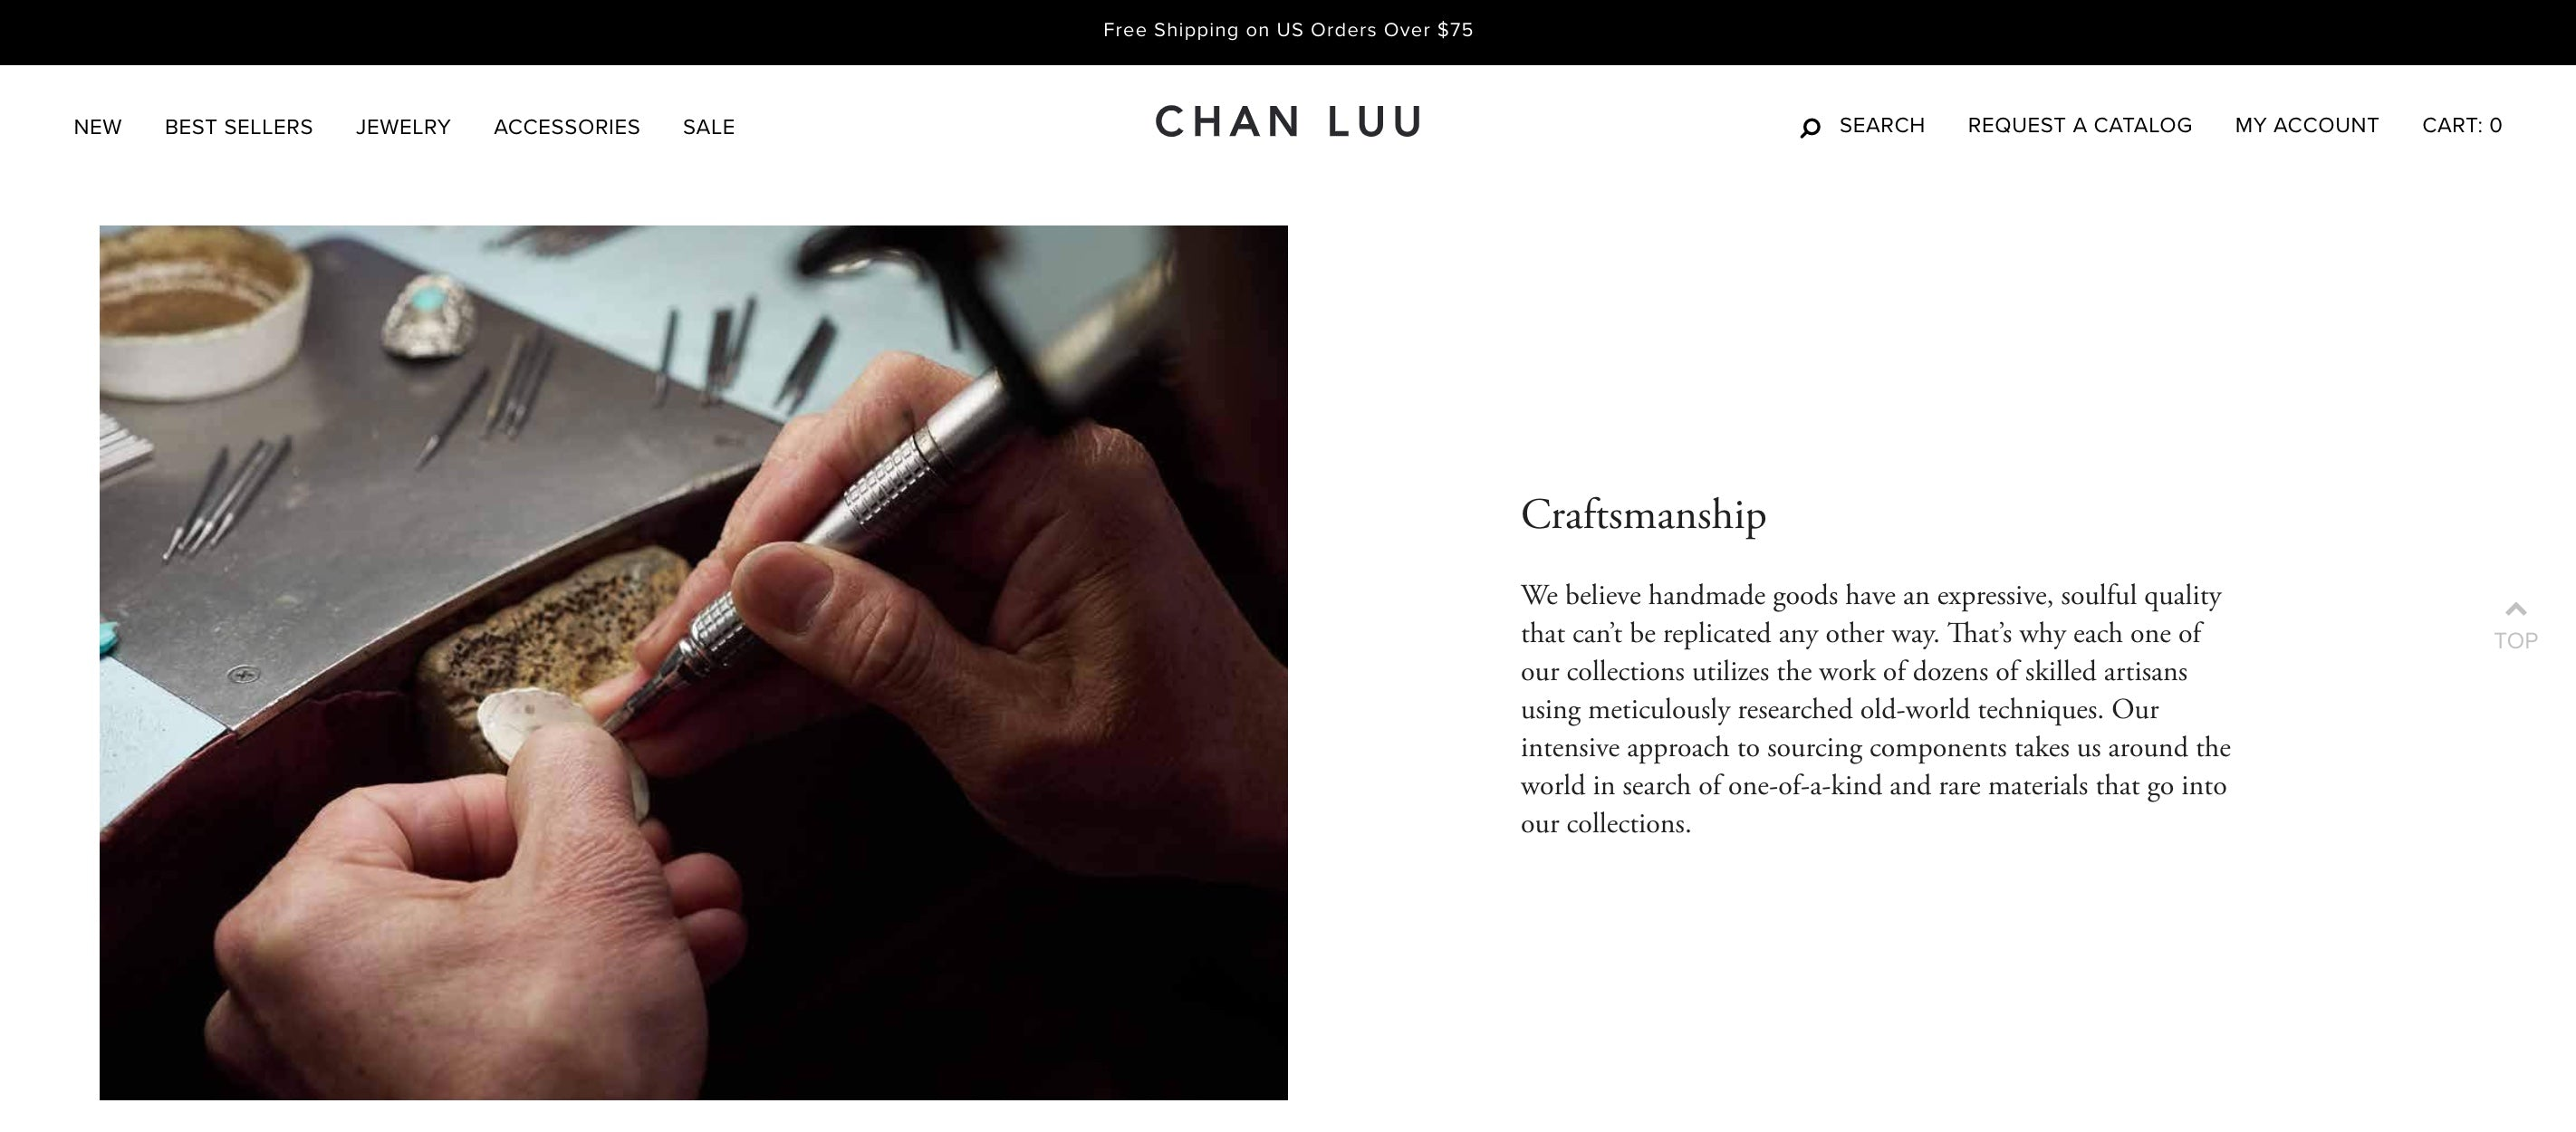 Chan Luu website About page